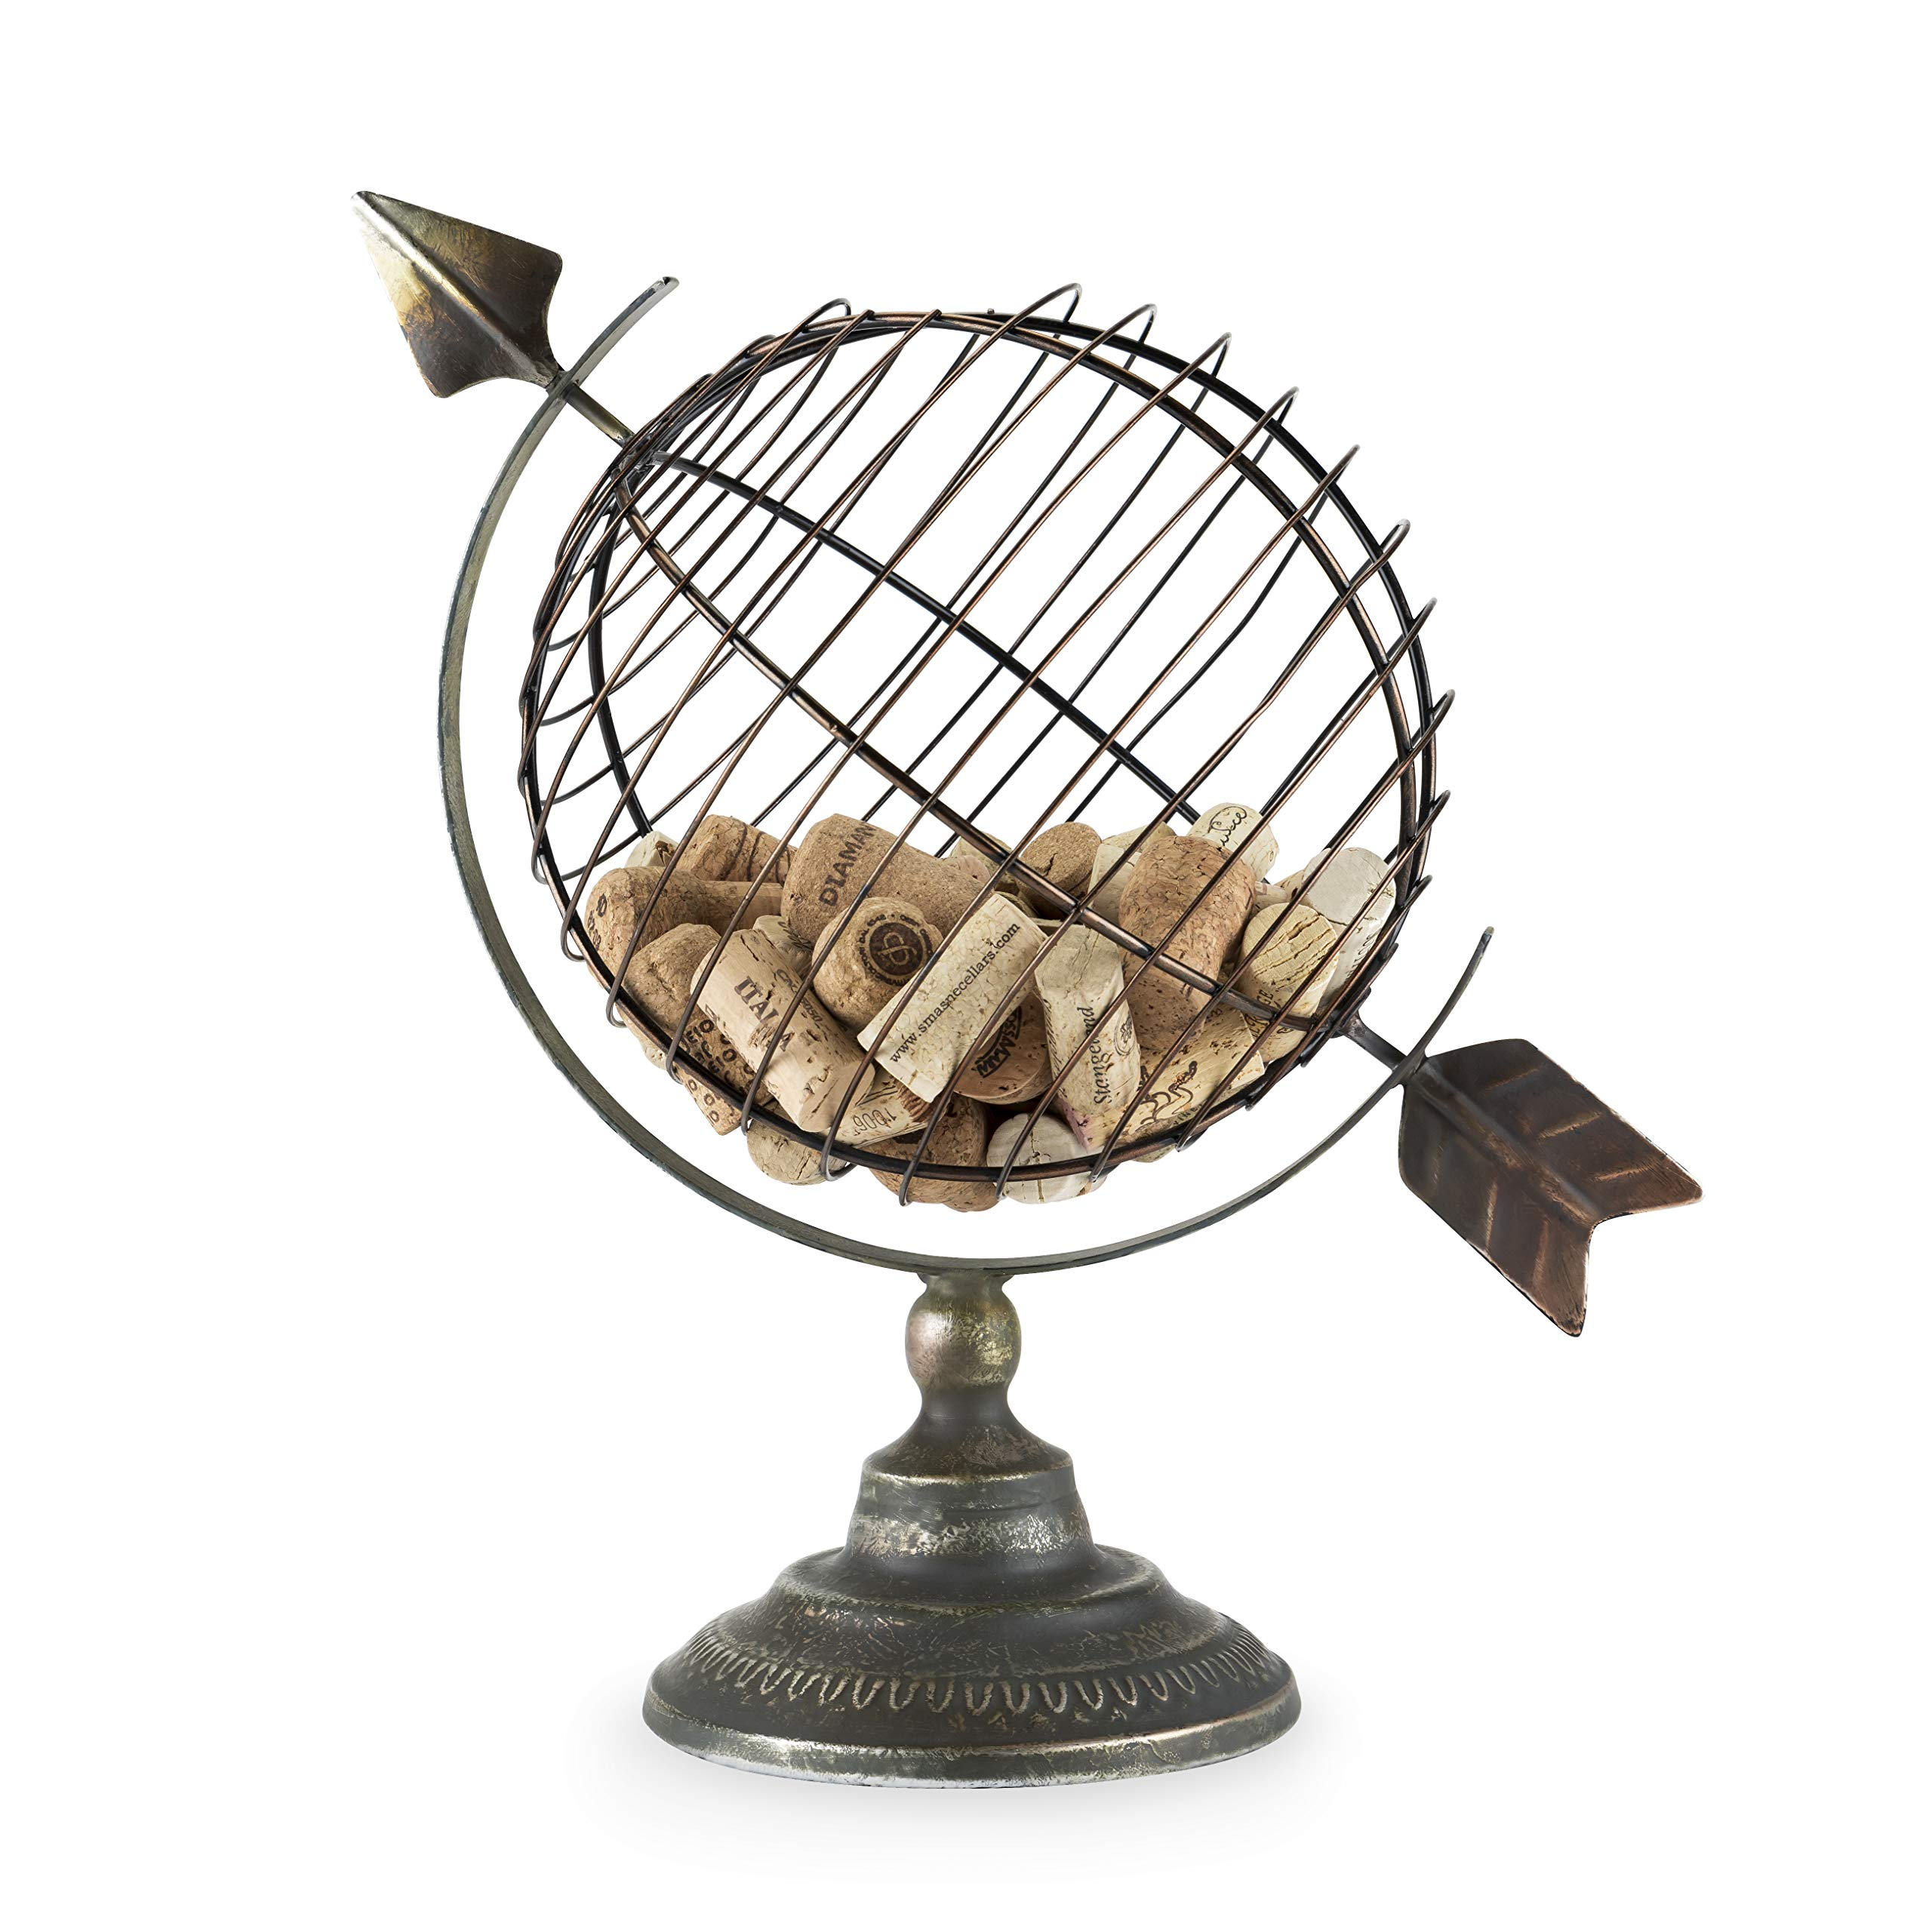 Twine 5596 Chateau: Old World Globe Cork Display, Multicolor by Twine